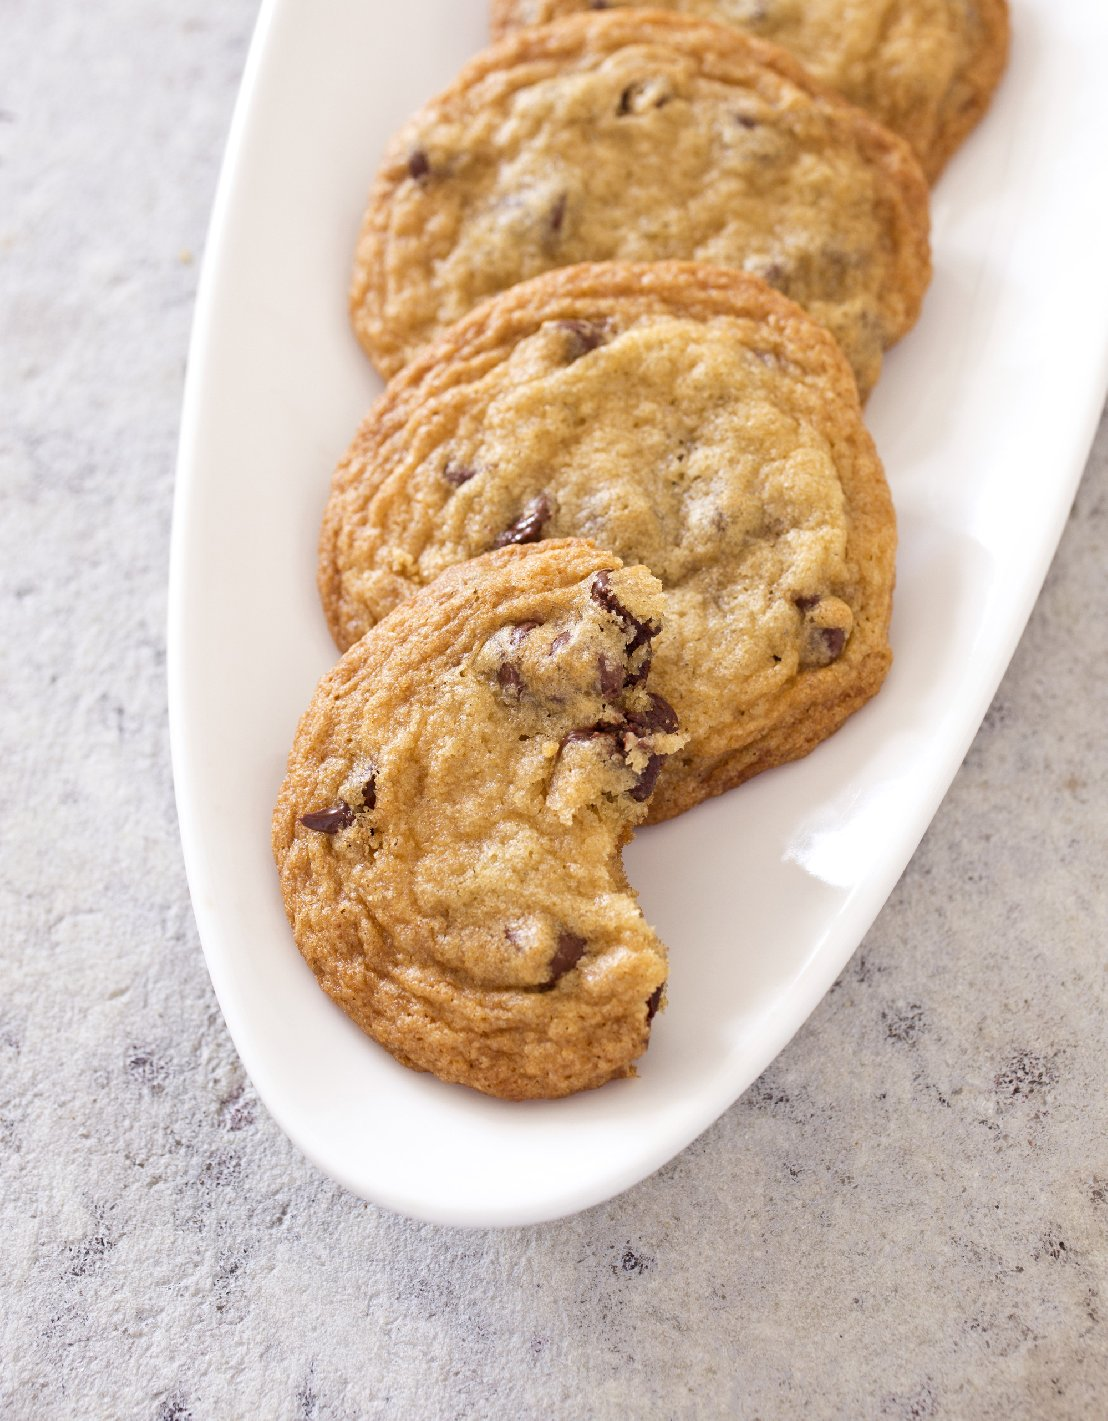 Chocolate Chip Cookies. Courtesy of America's Test Kitchen